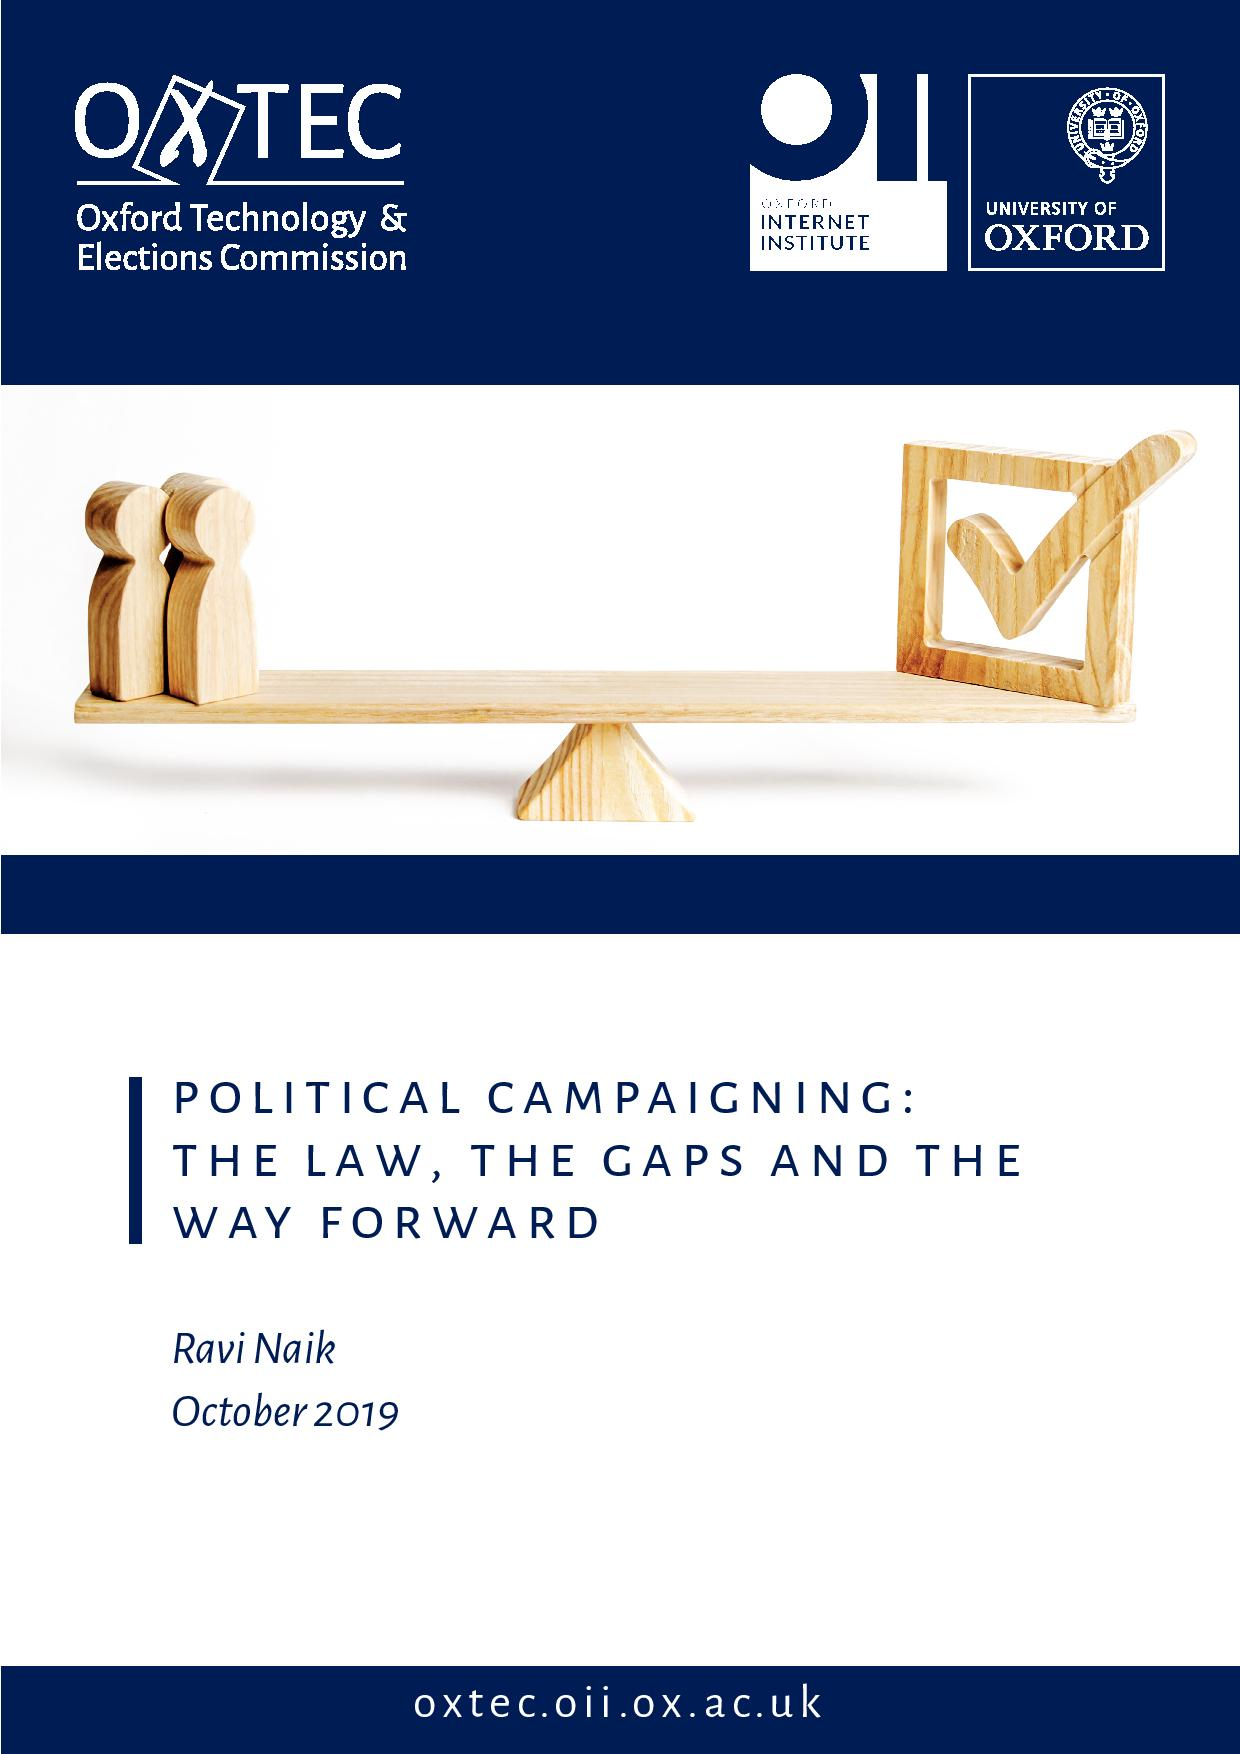 Political Campaigning: the Law, the Gaps and the Way Forward